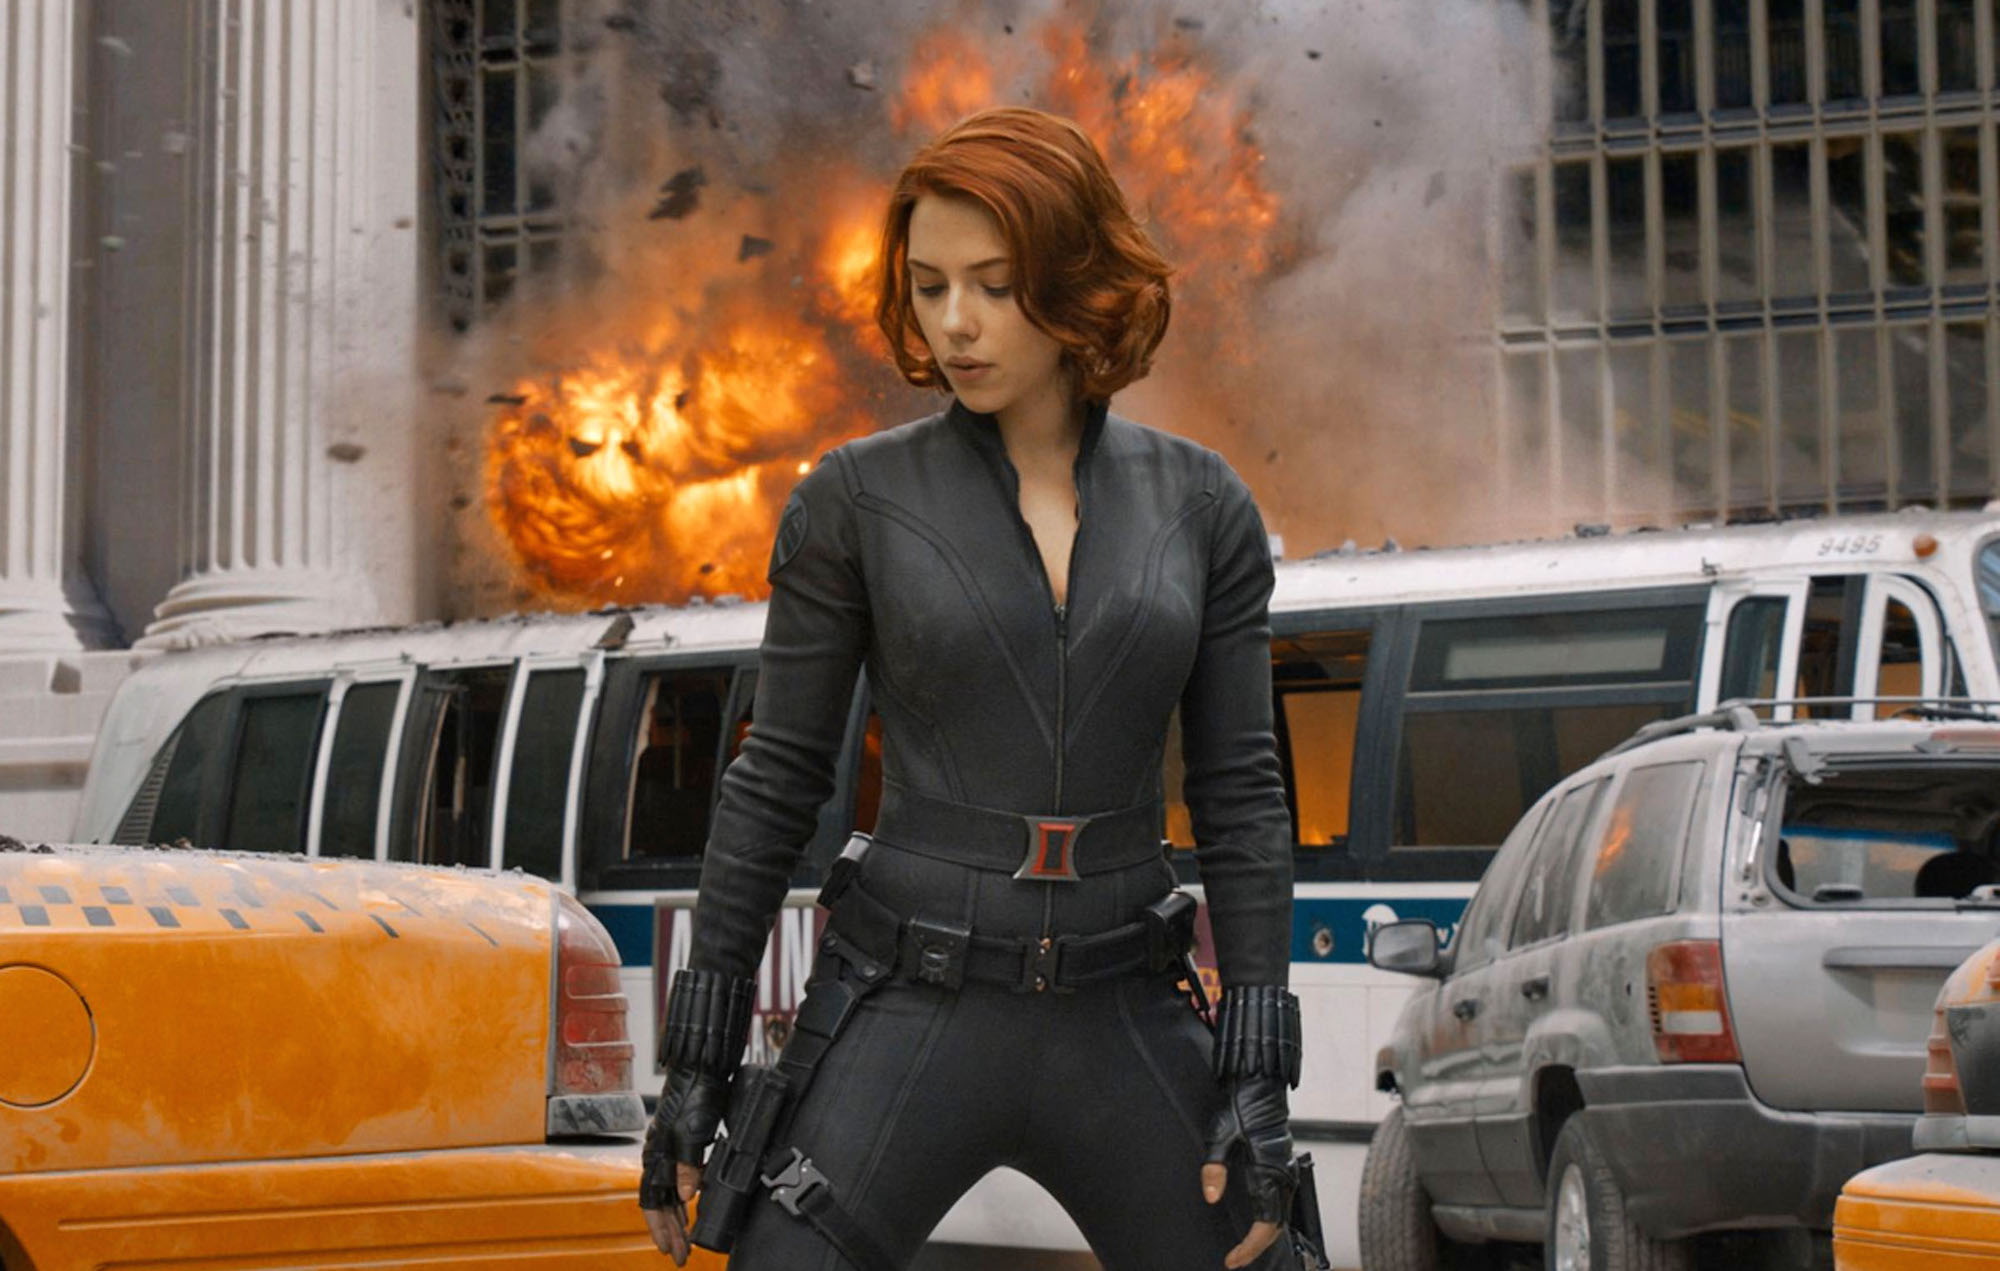 Is Marvel planning to resurrect 'Black Widow' in the MCU?